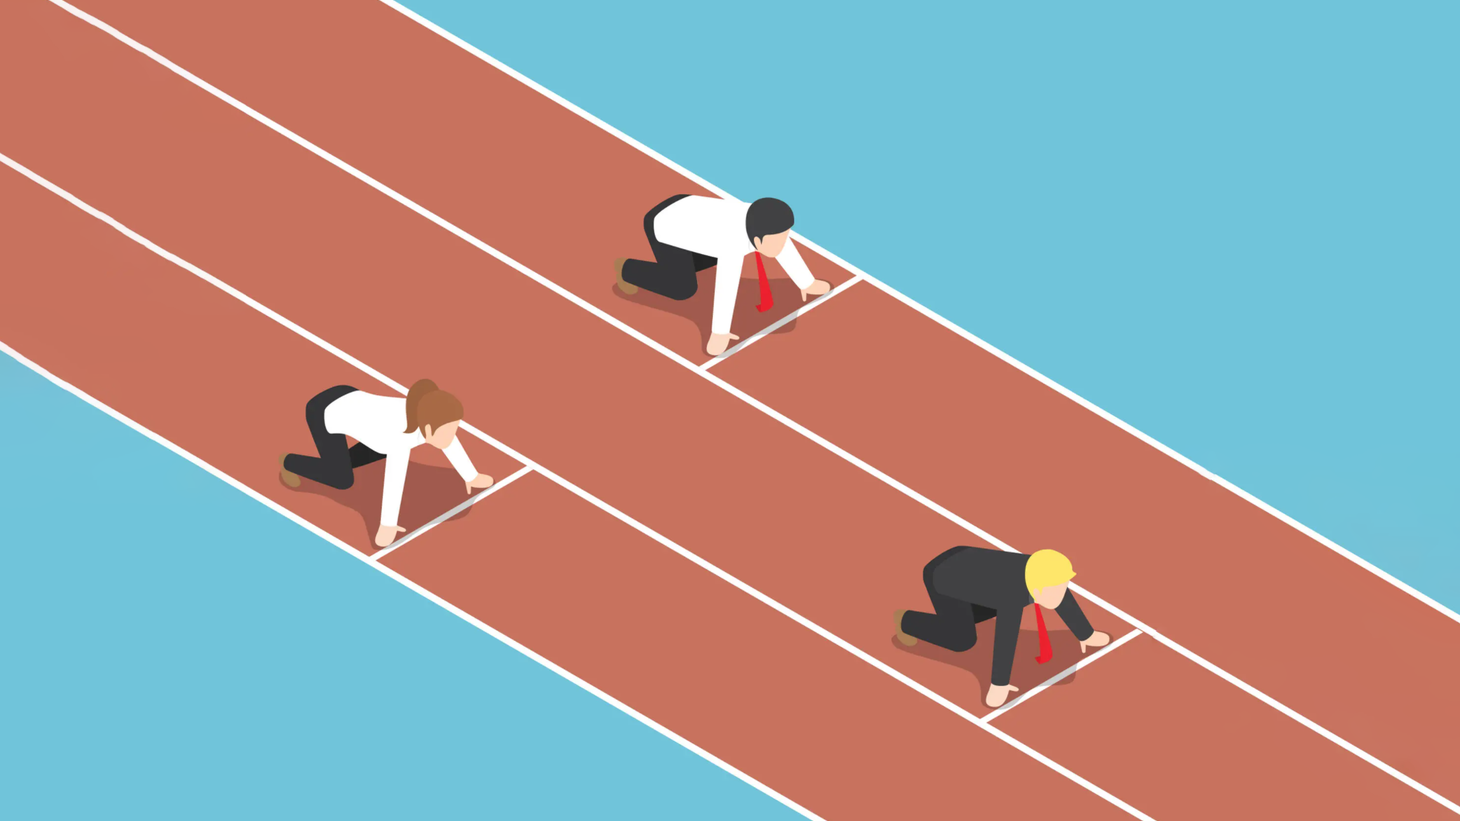 Is meritocracy based largely on luck? How much does education actually play a role?